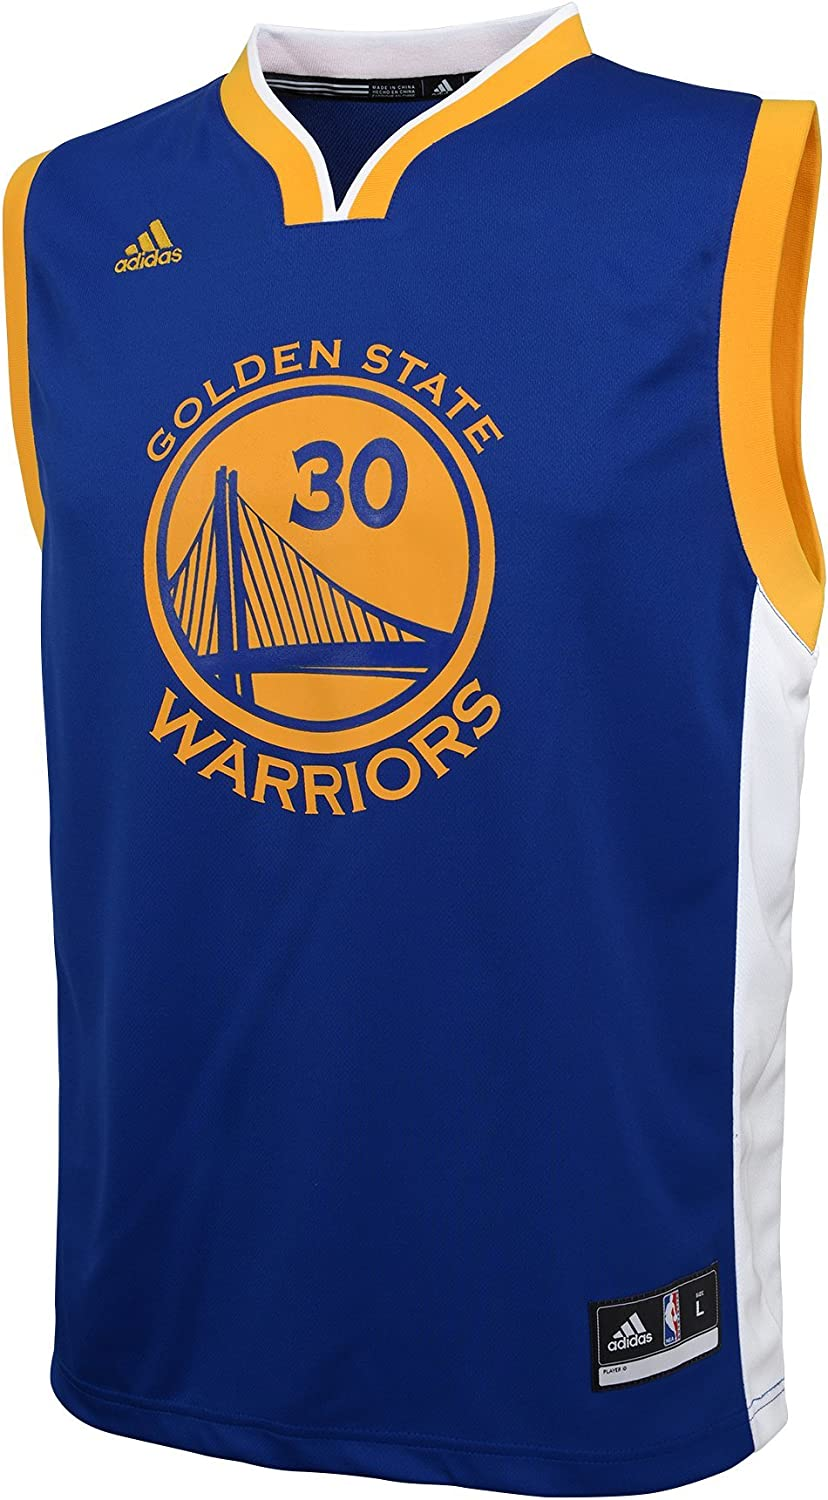 iSport Gifts Steph Curry Basketball Jersey Baby Infant /& Toddler Onesies Rompers Pack of 2 Home /& Away Jersey Design Bundle